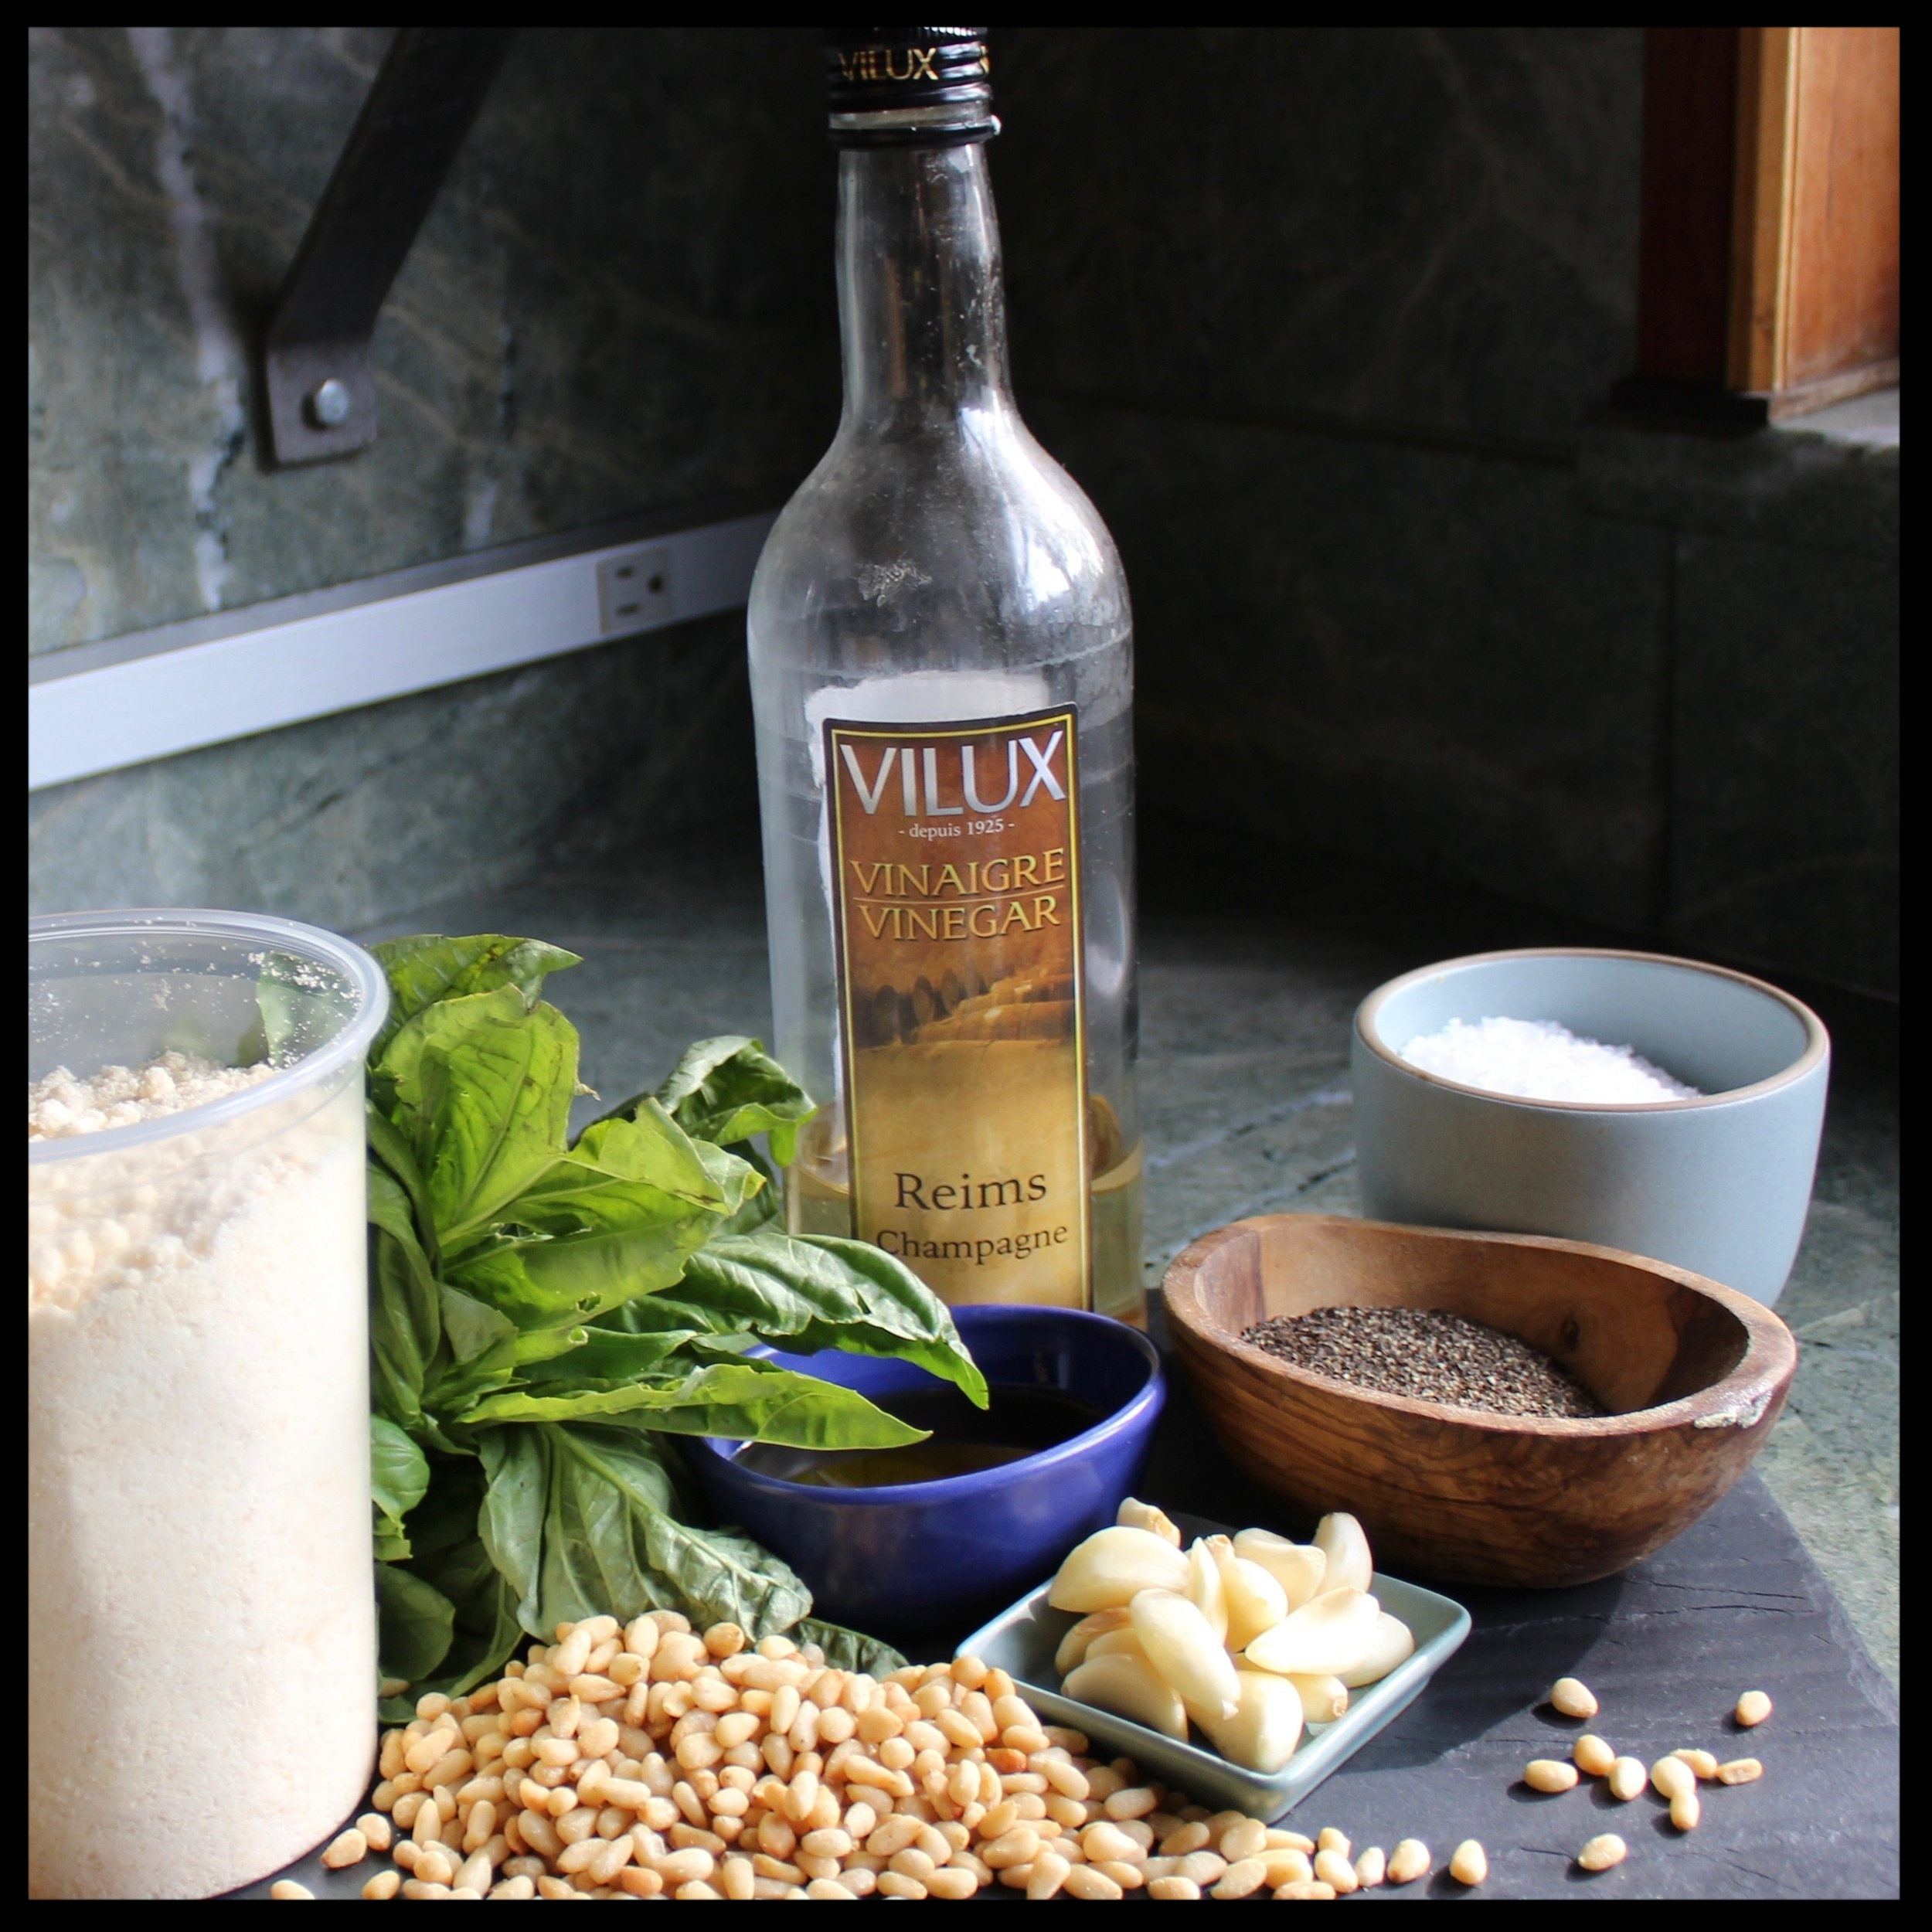 WHAT YOU NEED:   - 6 cloves garlic  - 1 bunch (approx 8oz) fresh basil  - 1/2 cup toasted pine nuts (pignoli)  - 1 cup grated parmesan or pecorino romano (I used mix of both - parmesan is nutty/buttery, and romano salty/sharp)  - 1/2 cup extra virgin olive oil  - 1/4 cup champagne or white wine vinegar  - salt and pepper